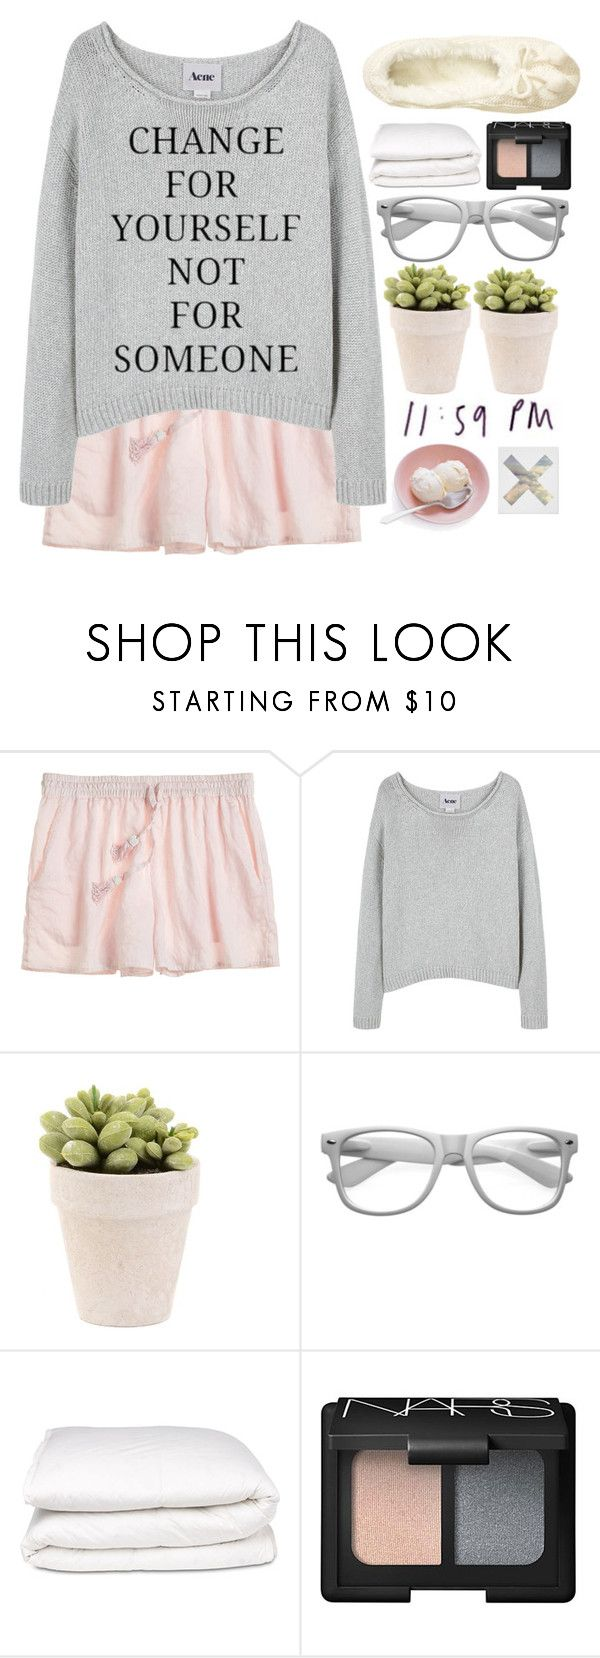 """""""Eugenia"""" by authentically-absurd ❤ liked on Polyvore featuring Calypso St. Barth, Acne Studios, Retrò, Selfridges, NARS Cosmetics and H&M"""